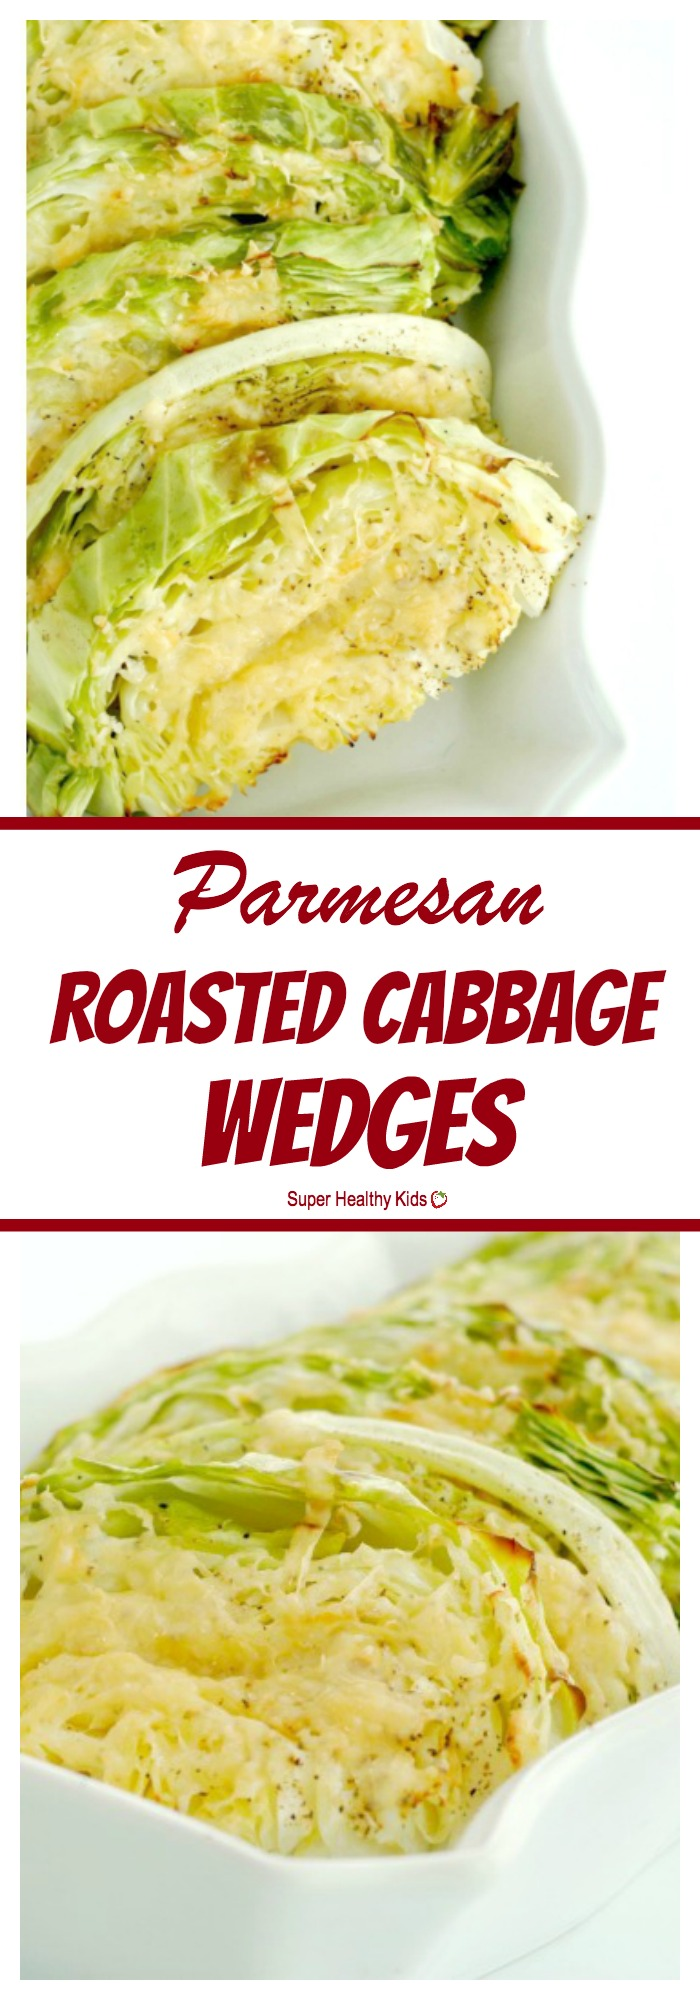 FOOD - Parmesan Roasted Cabbage Wedges. For the new cabbage eater, this is THE best recipe to try! http://www.superhealthykids.com/parmesan-roasted-cabbage-wedges/